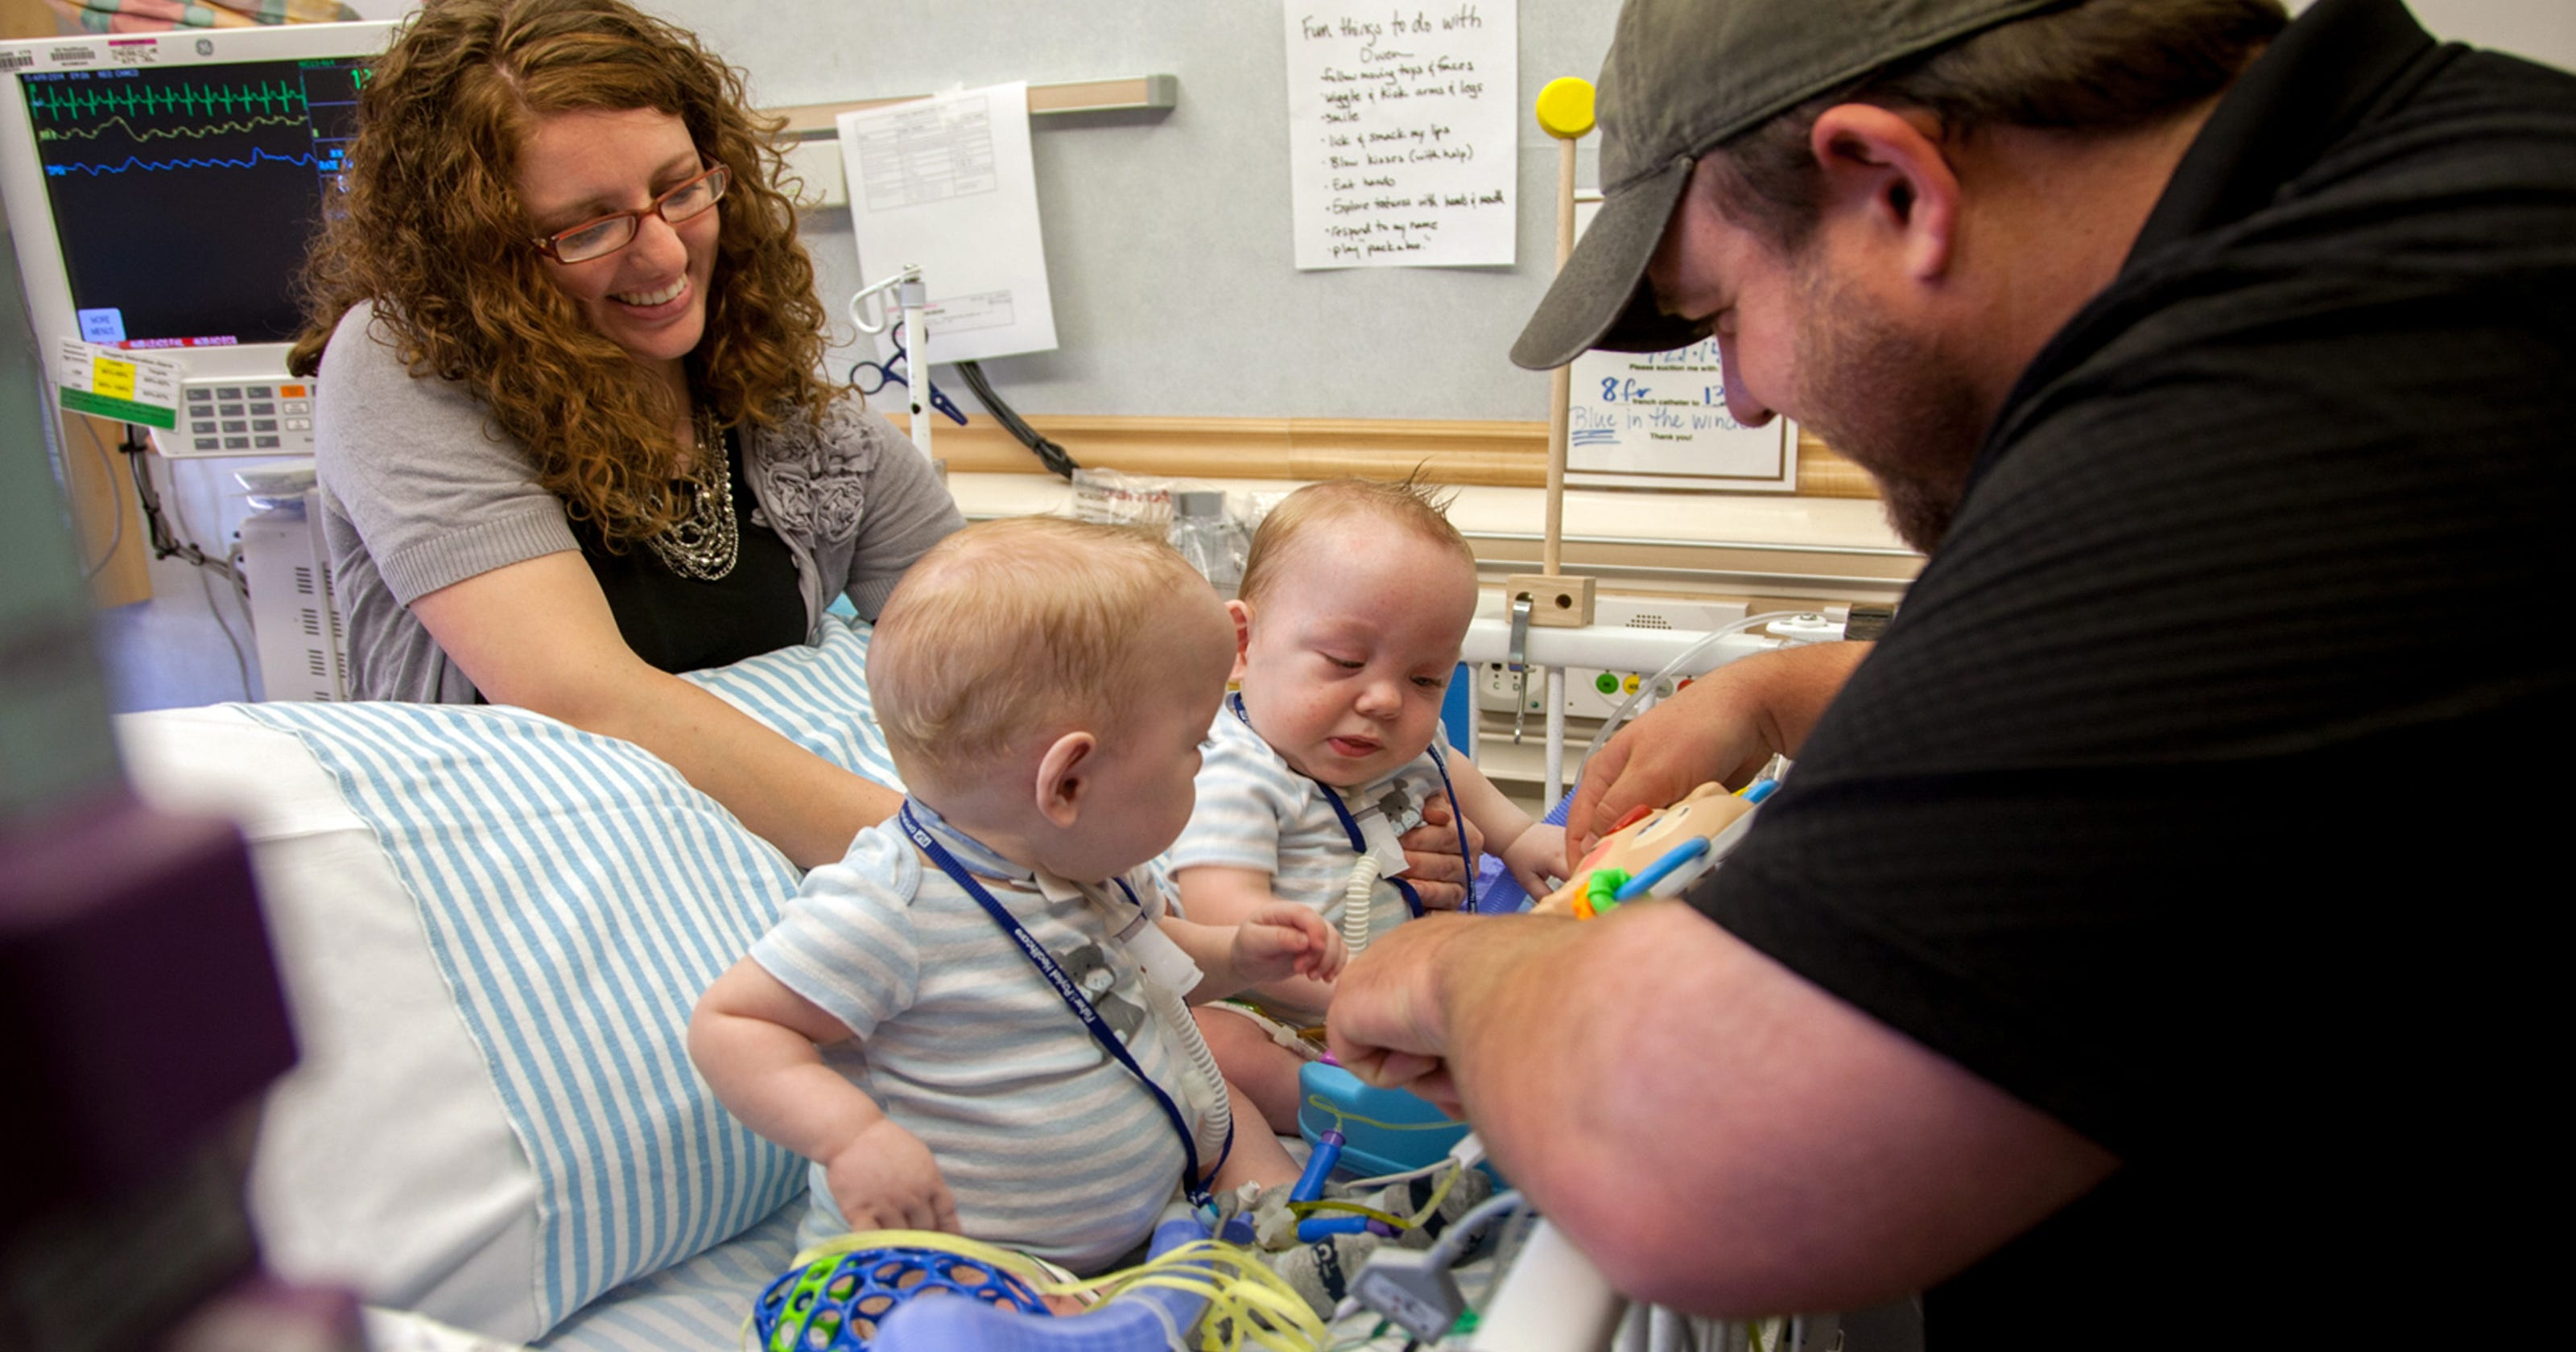 Once Conjoined Twins Leave Texas Hospital